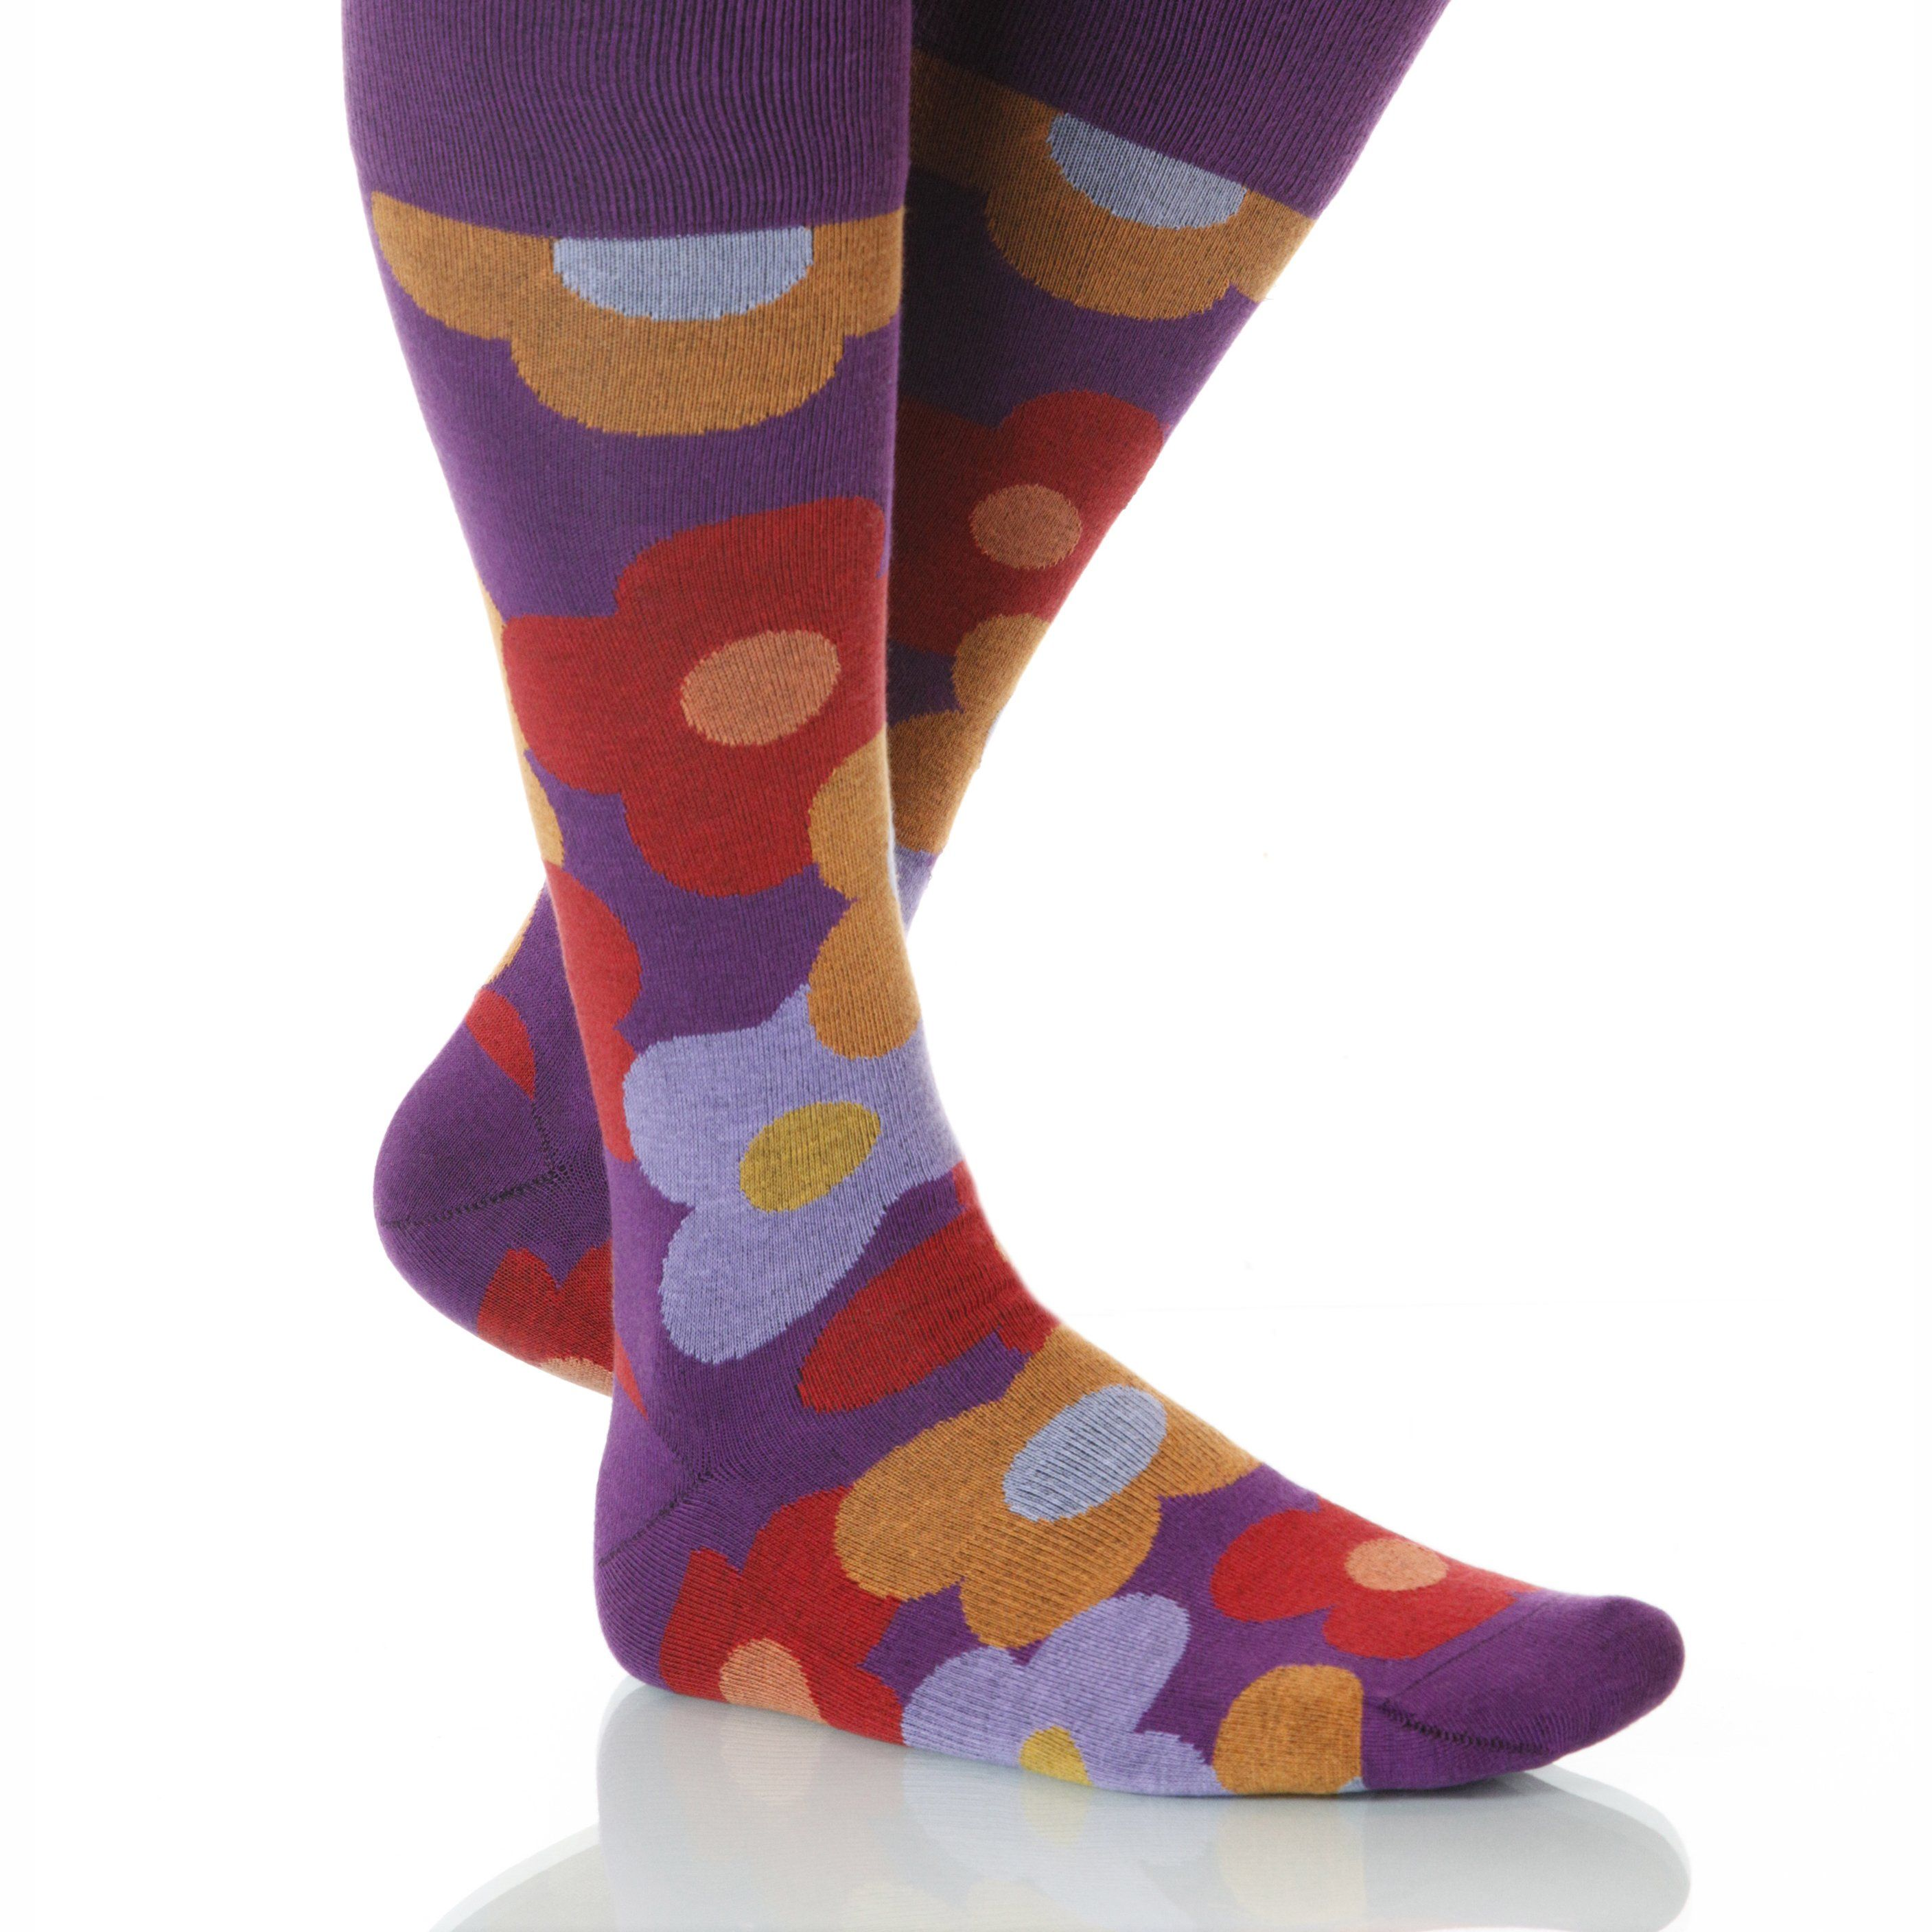 cee1155c1 Begonia Flora Socks; Men's or Women's Supima Cotton Purple/Orange in ...